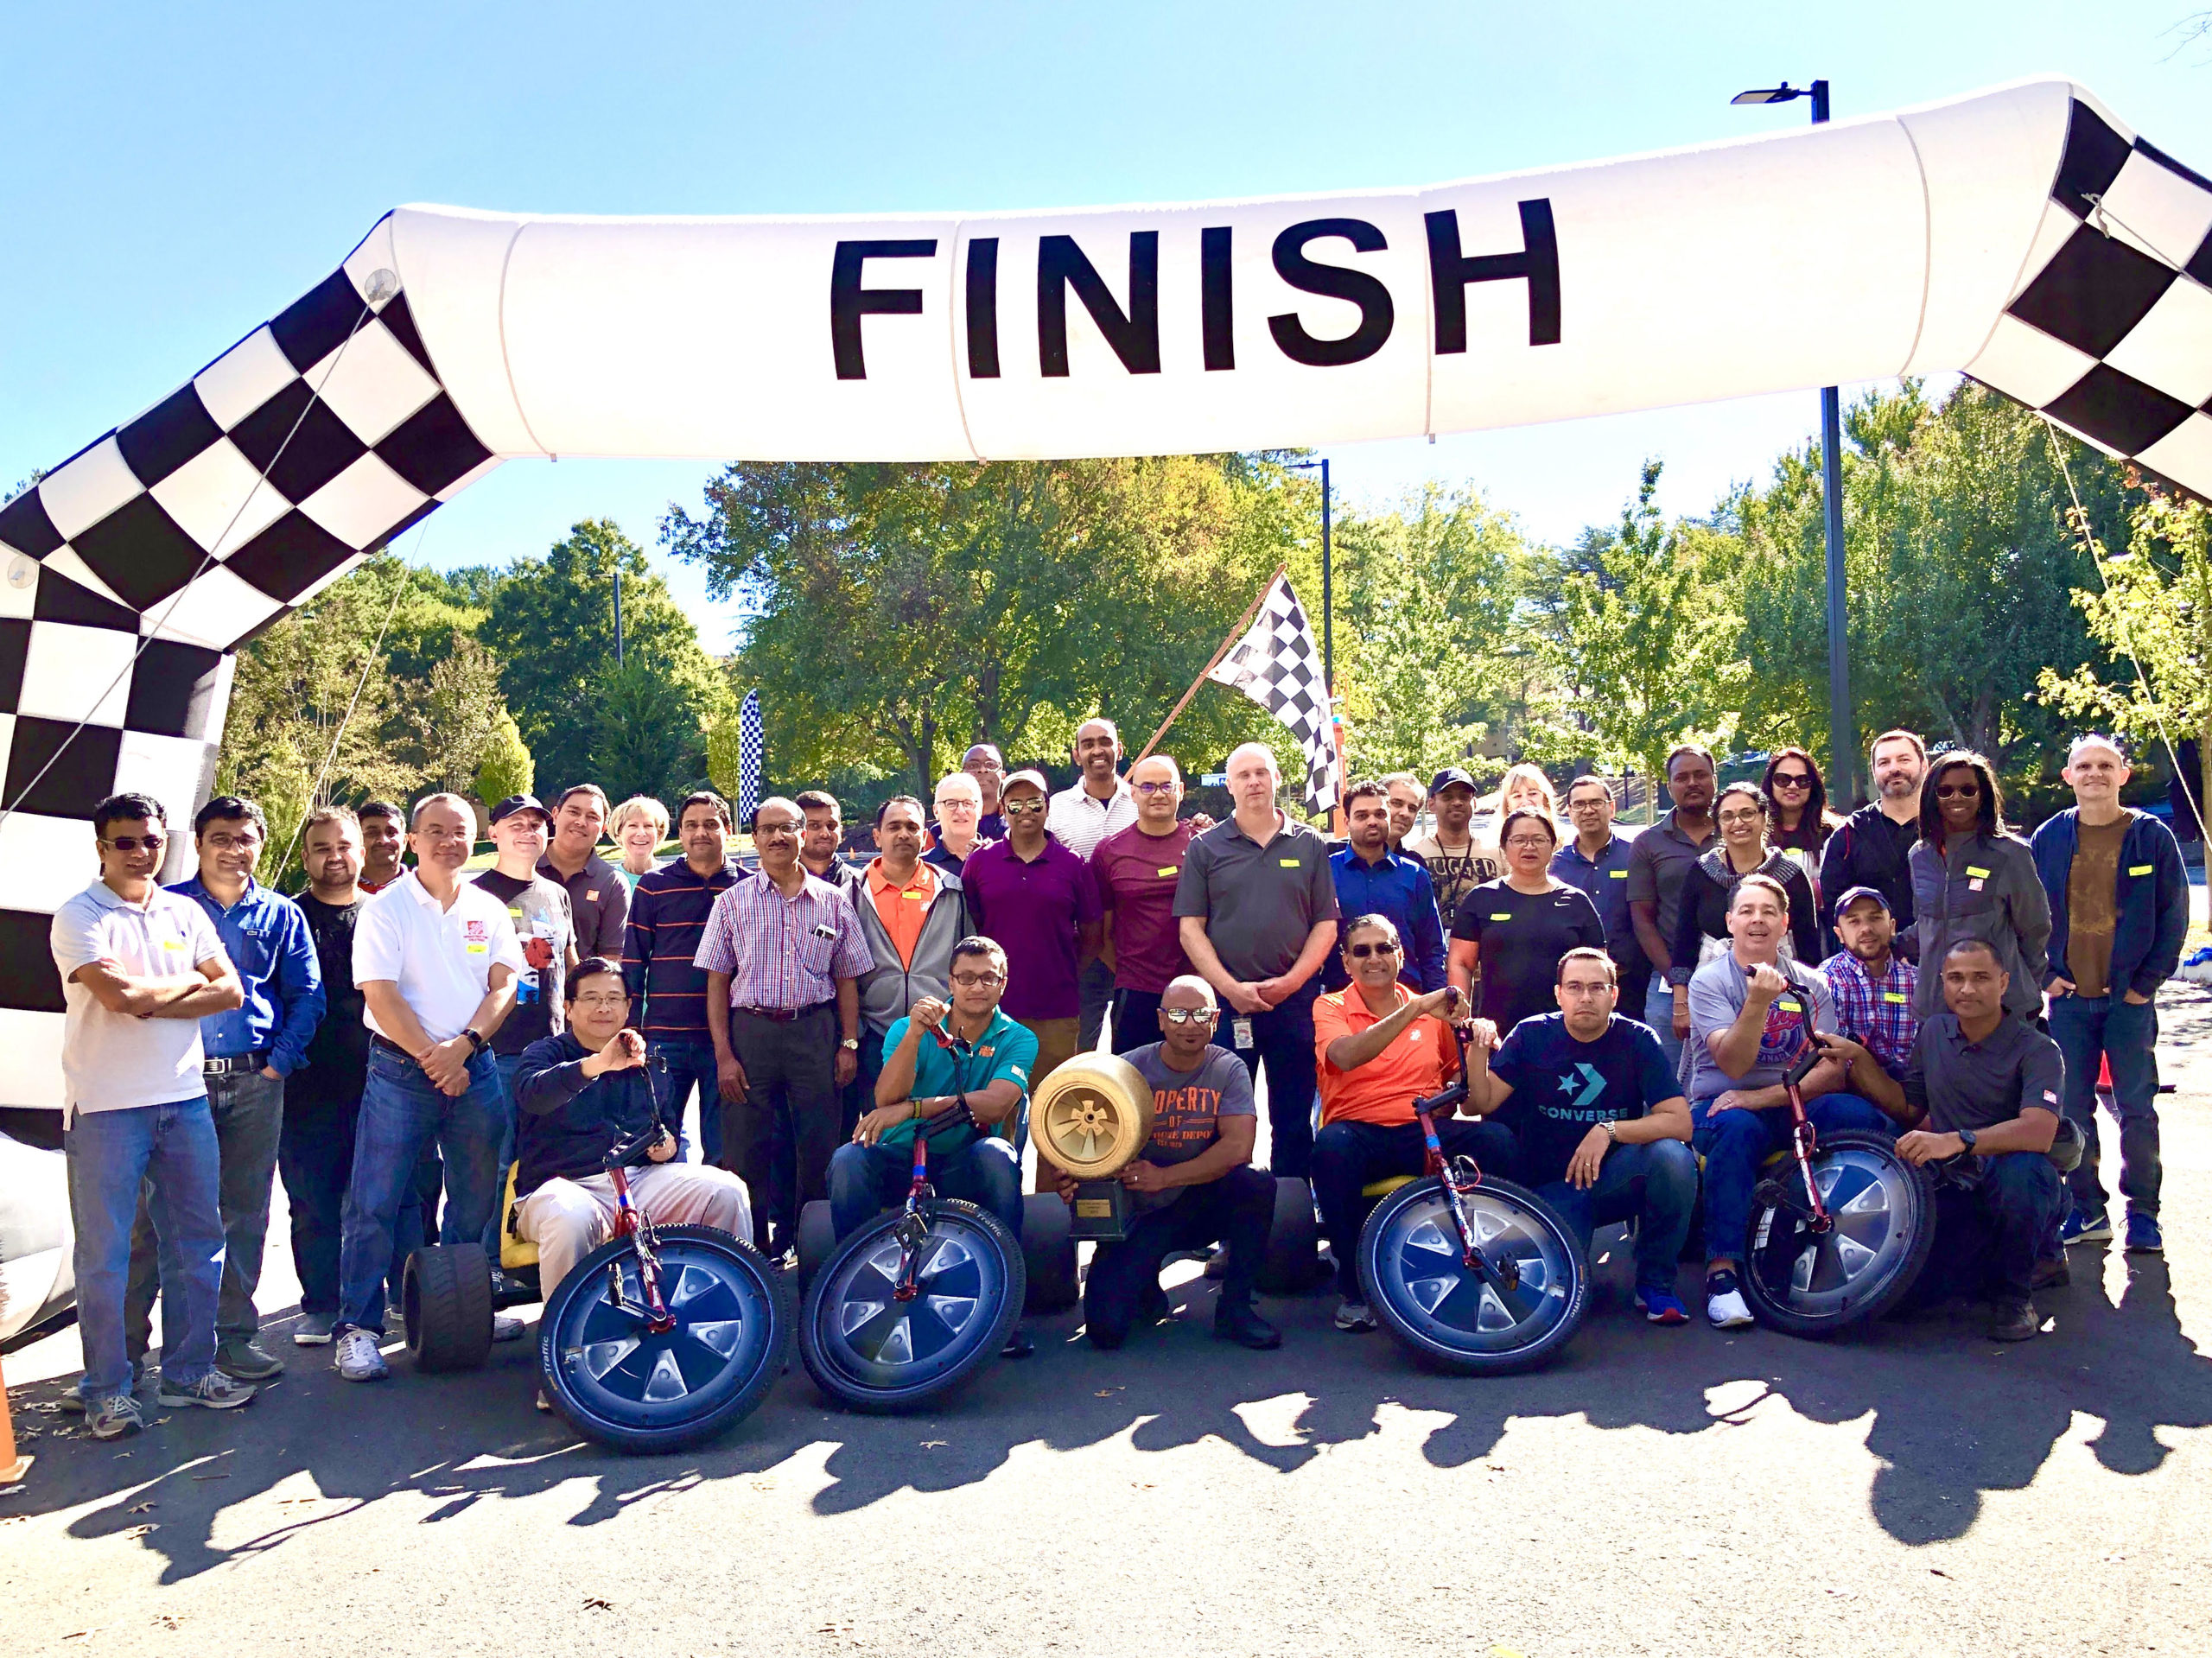 fun team building event for a large group at Home Depot, and one luck team got the Golden Wheel Trophy